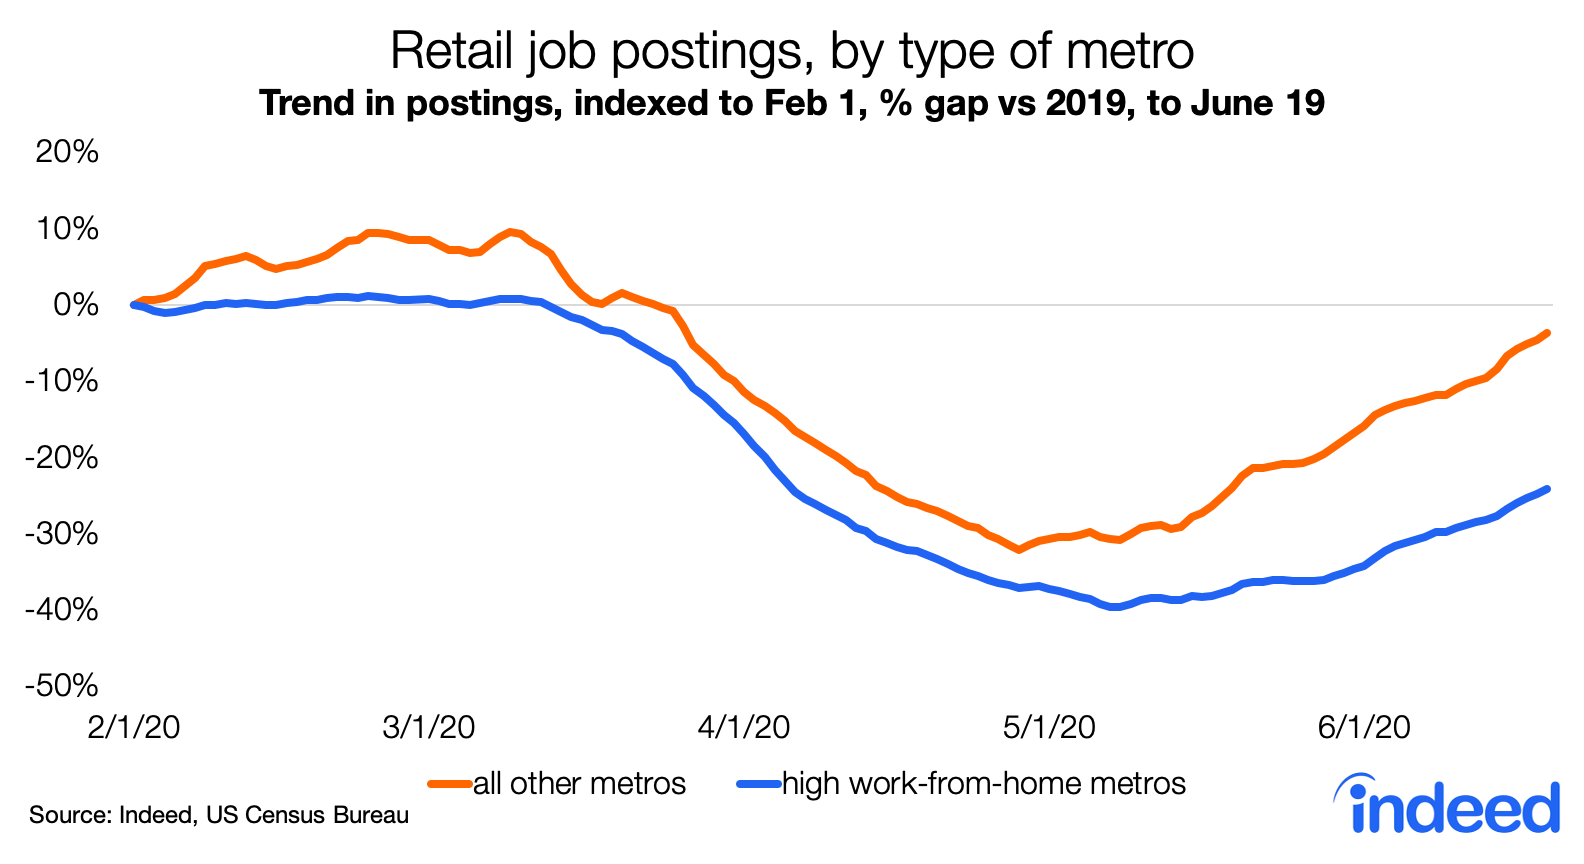 retail job postings, by type of metro